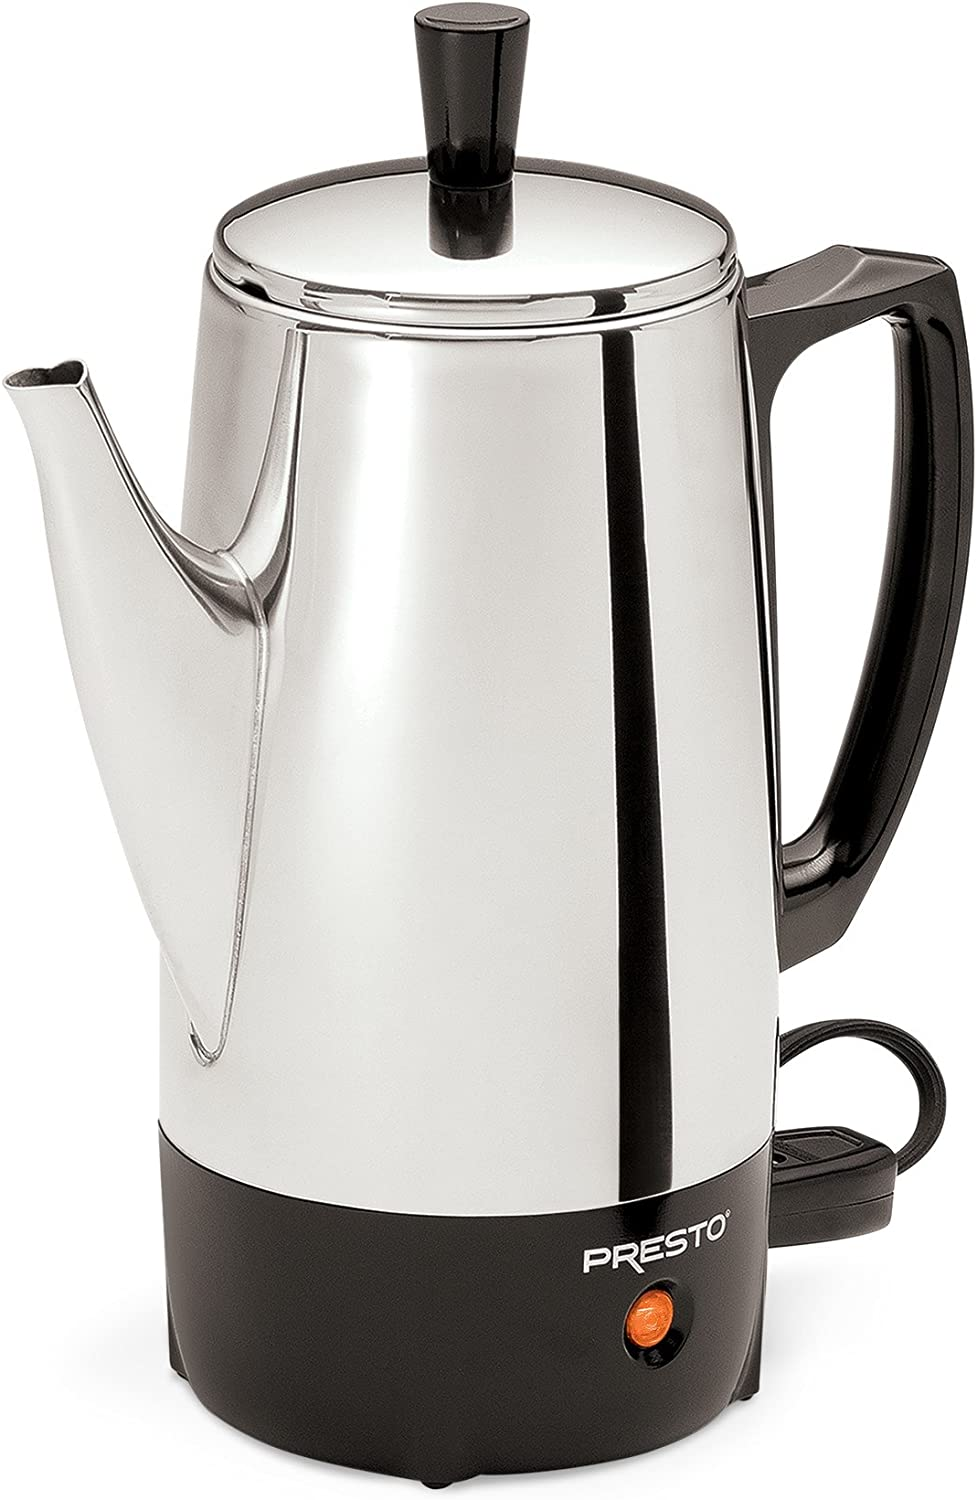 Presto 02822 6 Cup Stainless